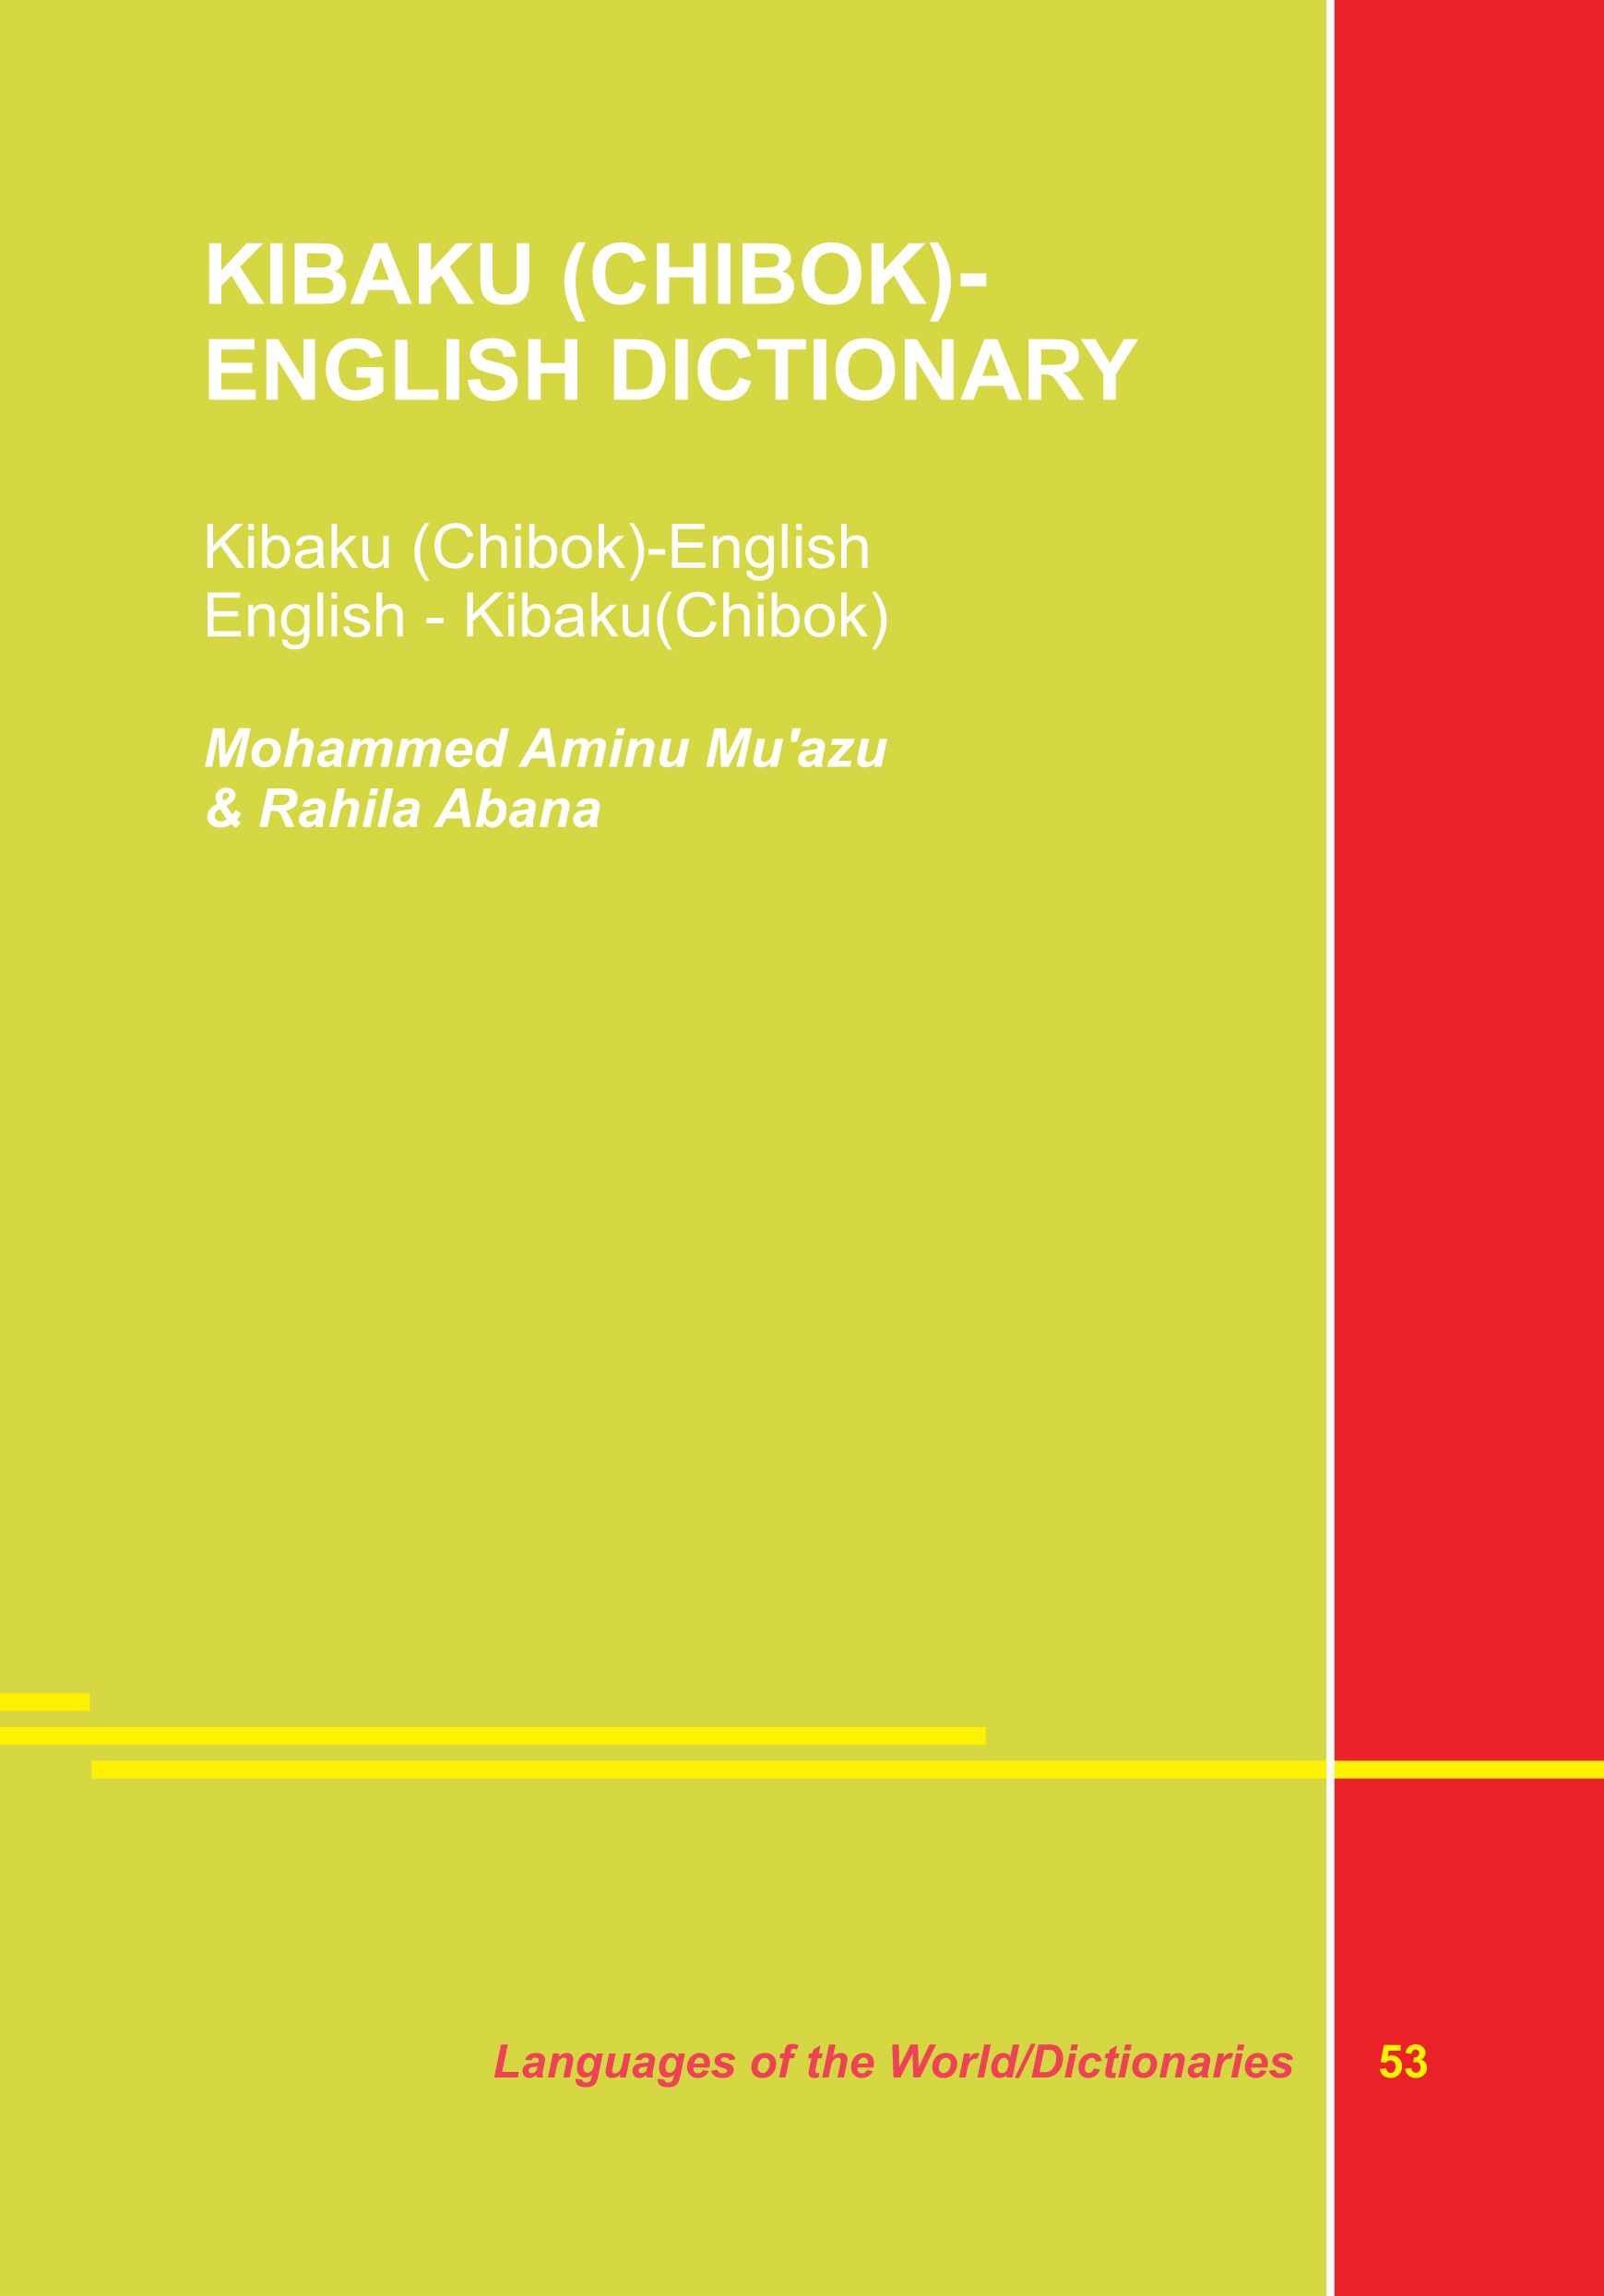 Kibaku (Chibok)-English Dictionary | Mu'azu / Abana, 2015 | Buch (Cover)